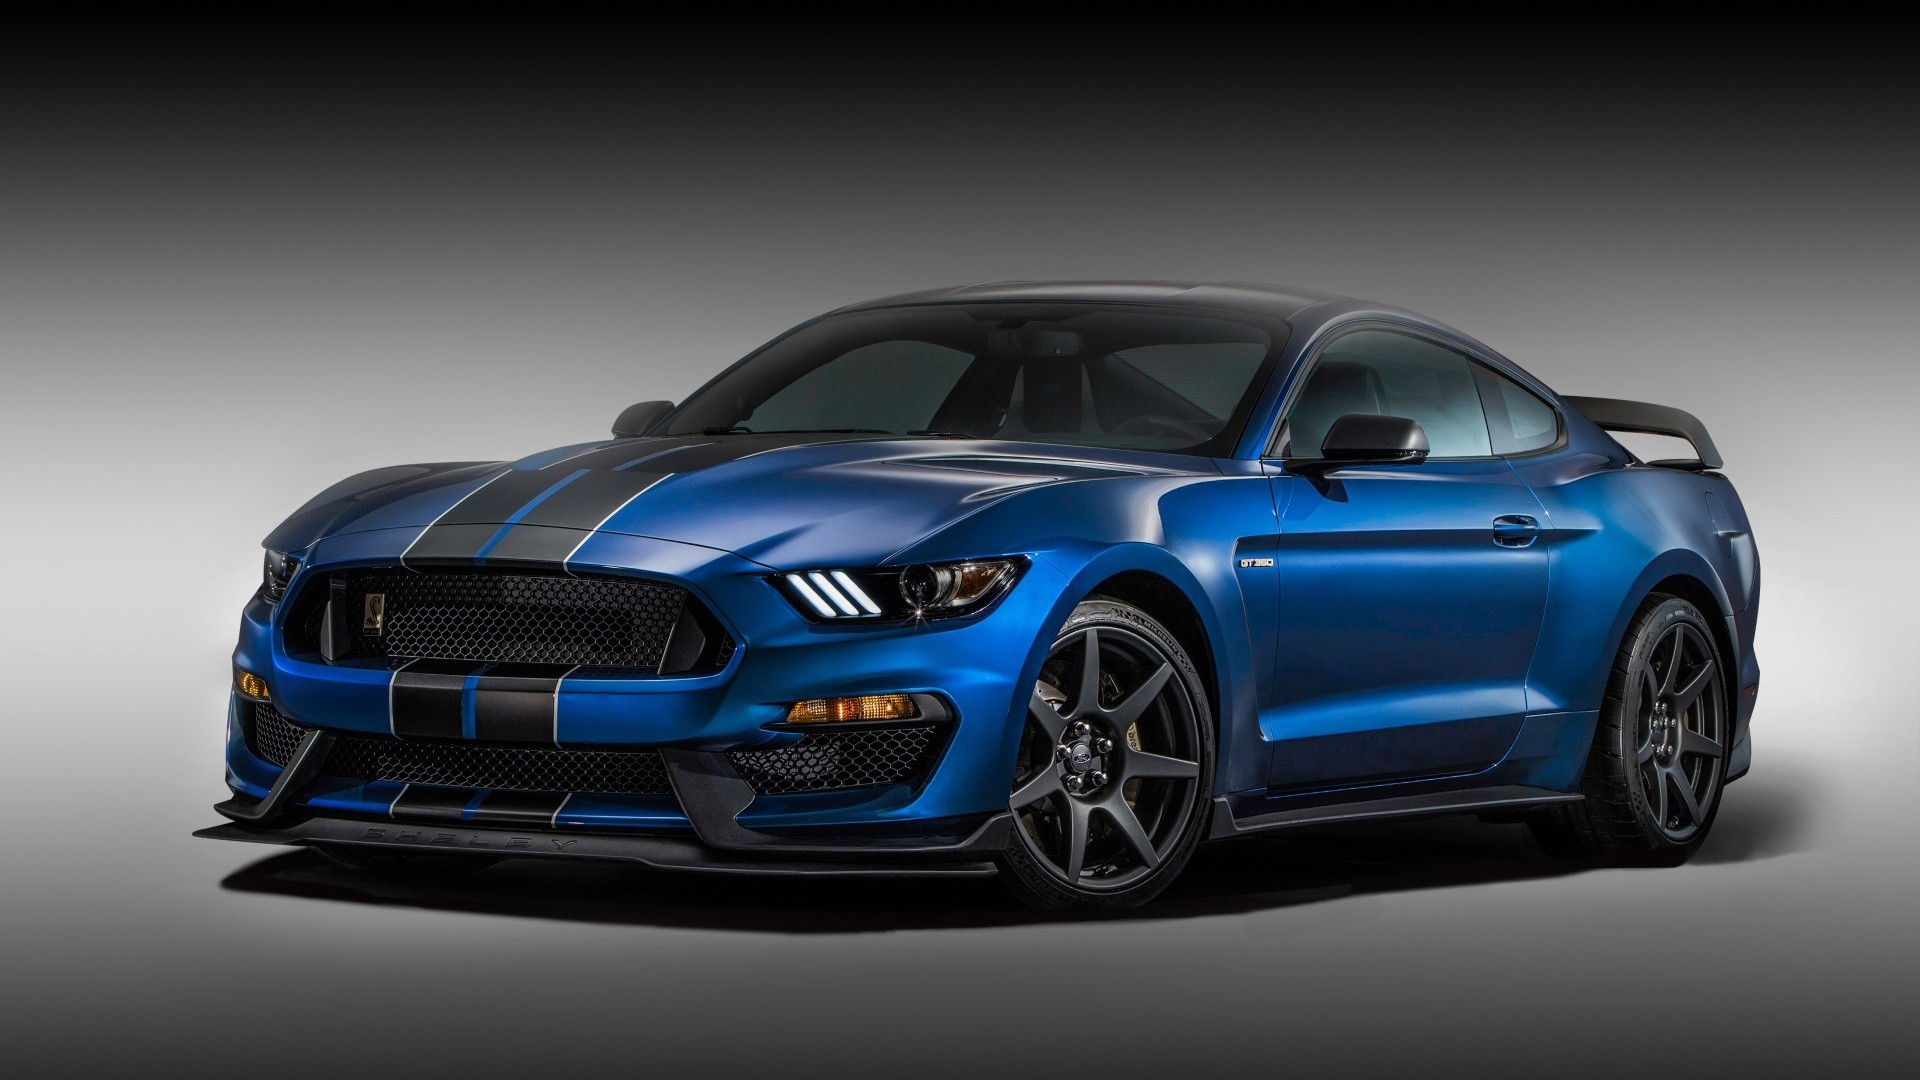 Ford Mustang Shelby Gt350r Wallpaper Hd Car Wallpapers